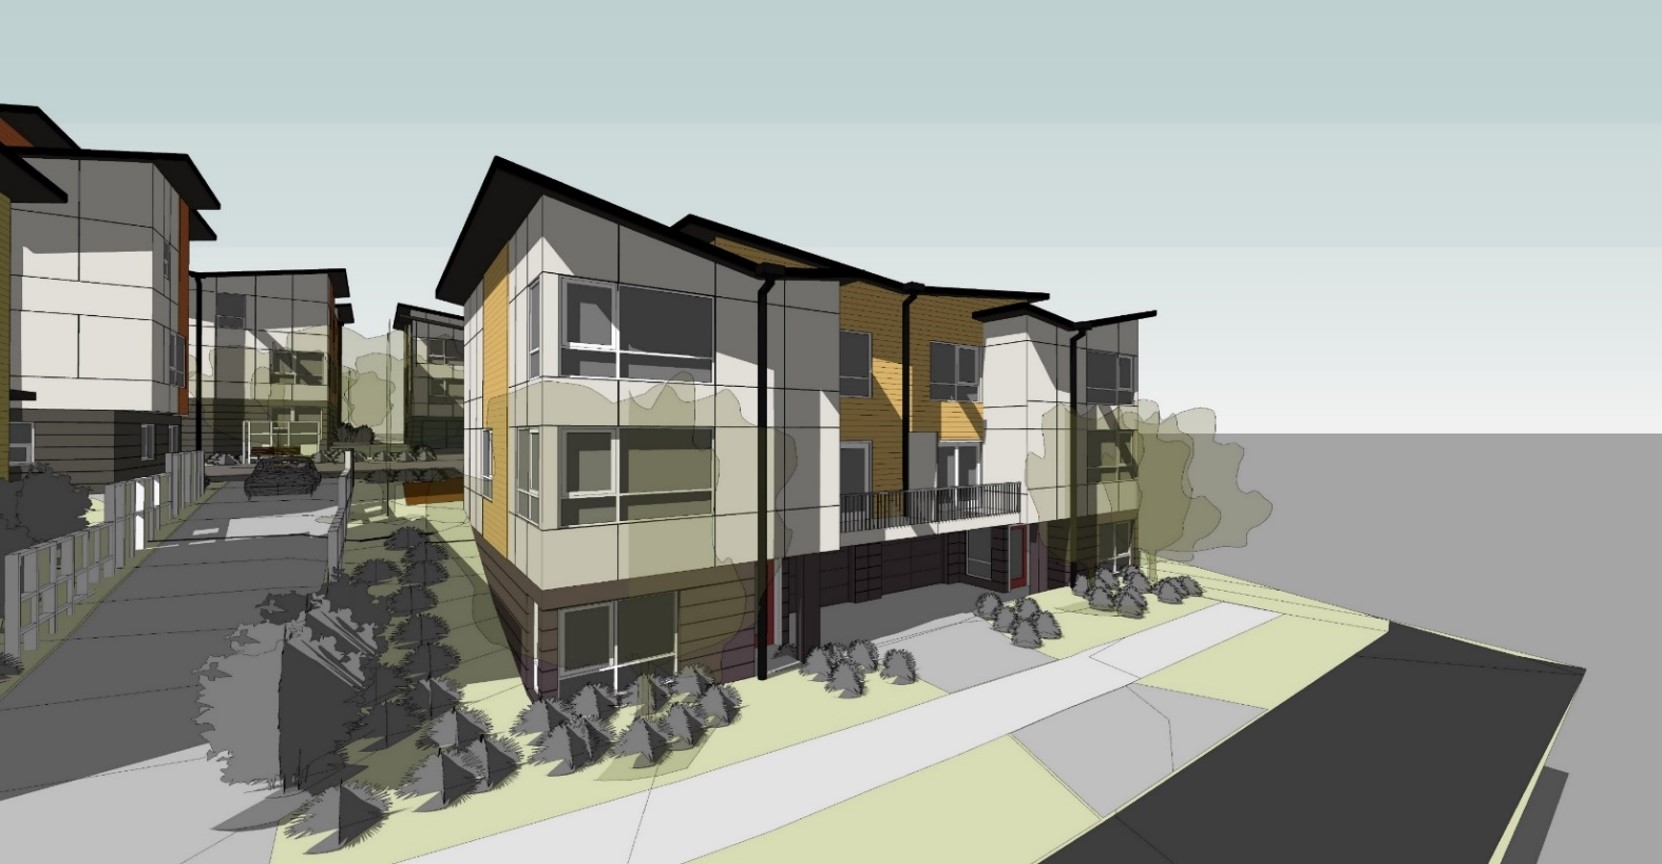 35th AVE Townhomes, parcel A,B